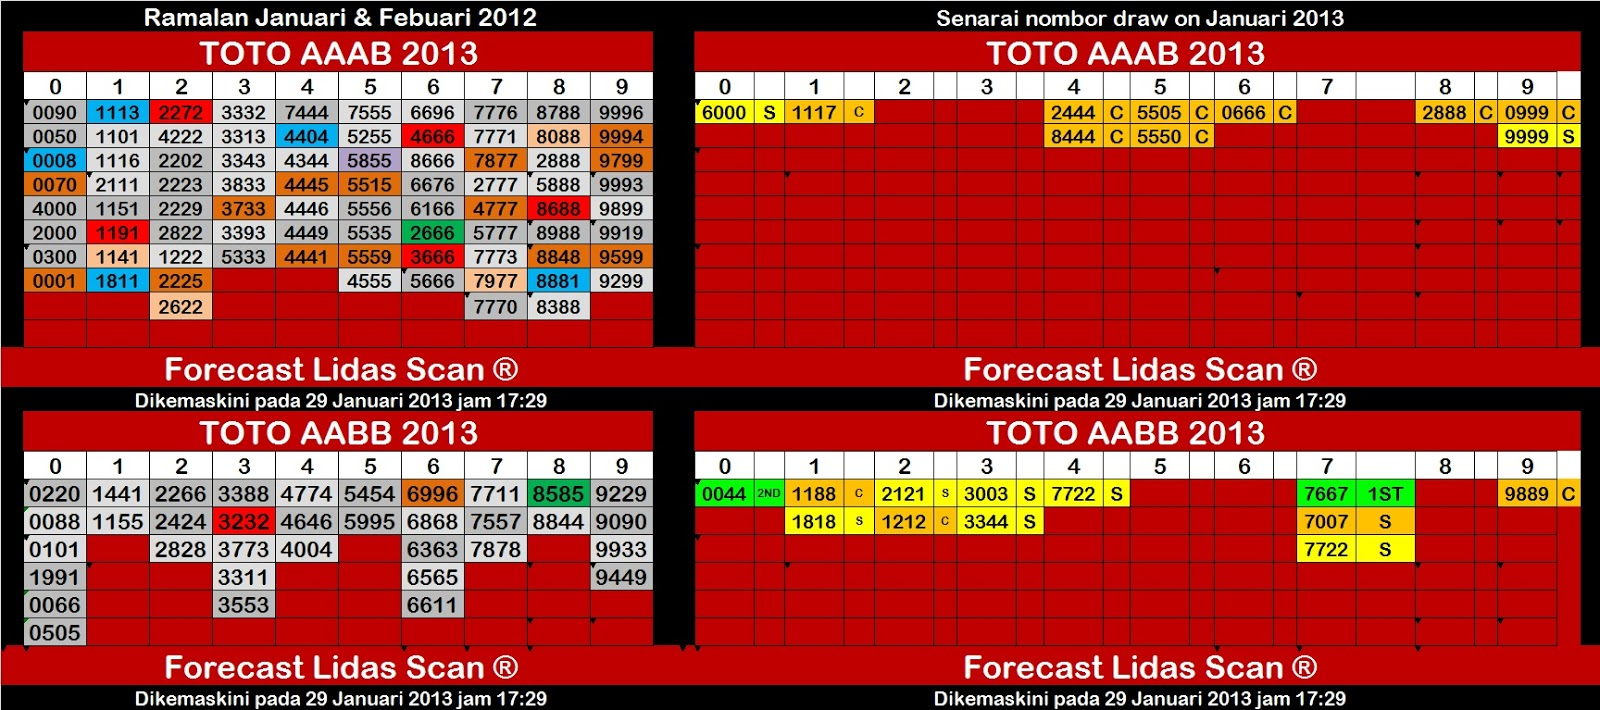 Sports toto 6d prediction : Basketball scores yesterday